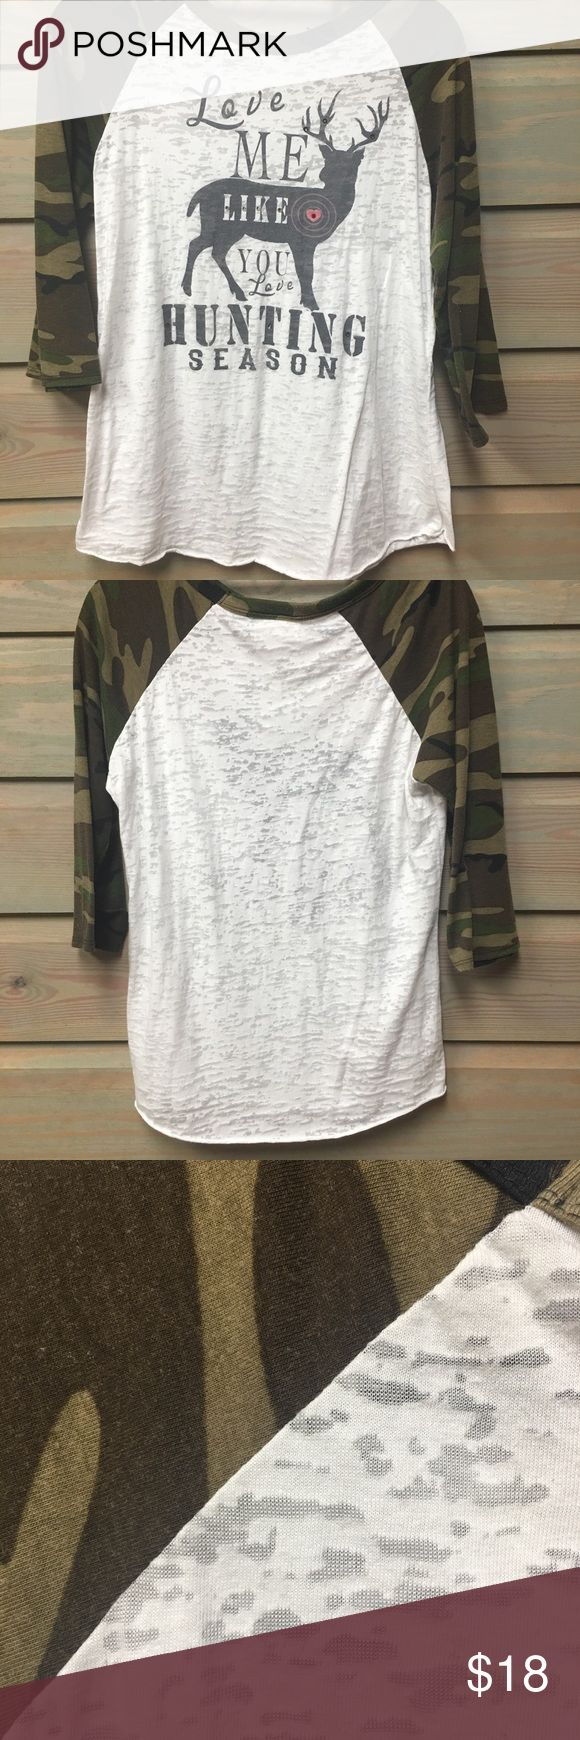 """Love Me Like You Love Hunting Season"" Women's M Crushed White and Camo Baseball Tee ""Love Me Like You Love Hunting Season"" embellished with a few rhinestones as shown. Very feminine. Perfect for a hunter or lady with a man whose a hunter! Tops"